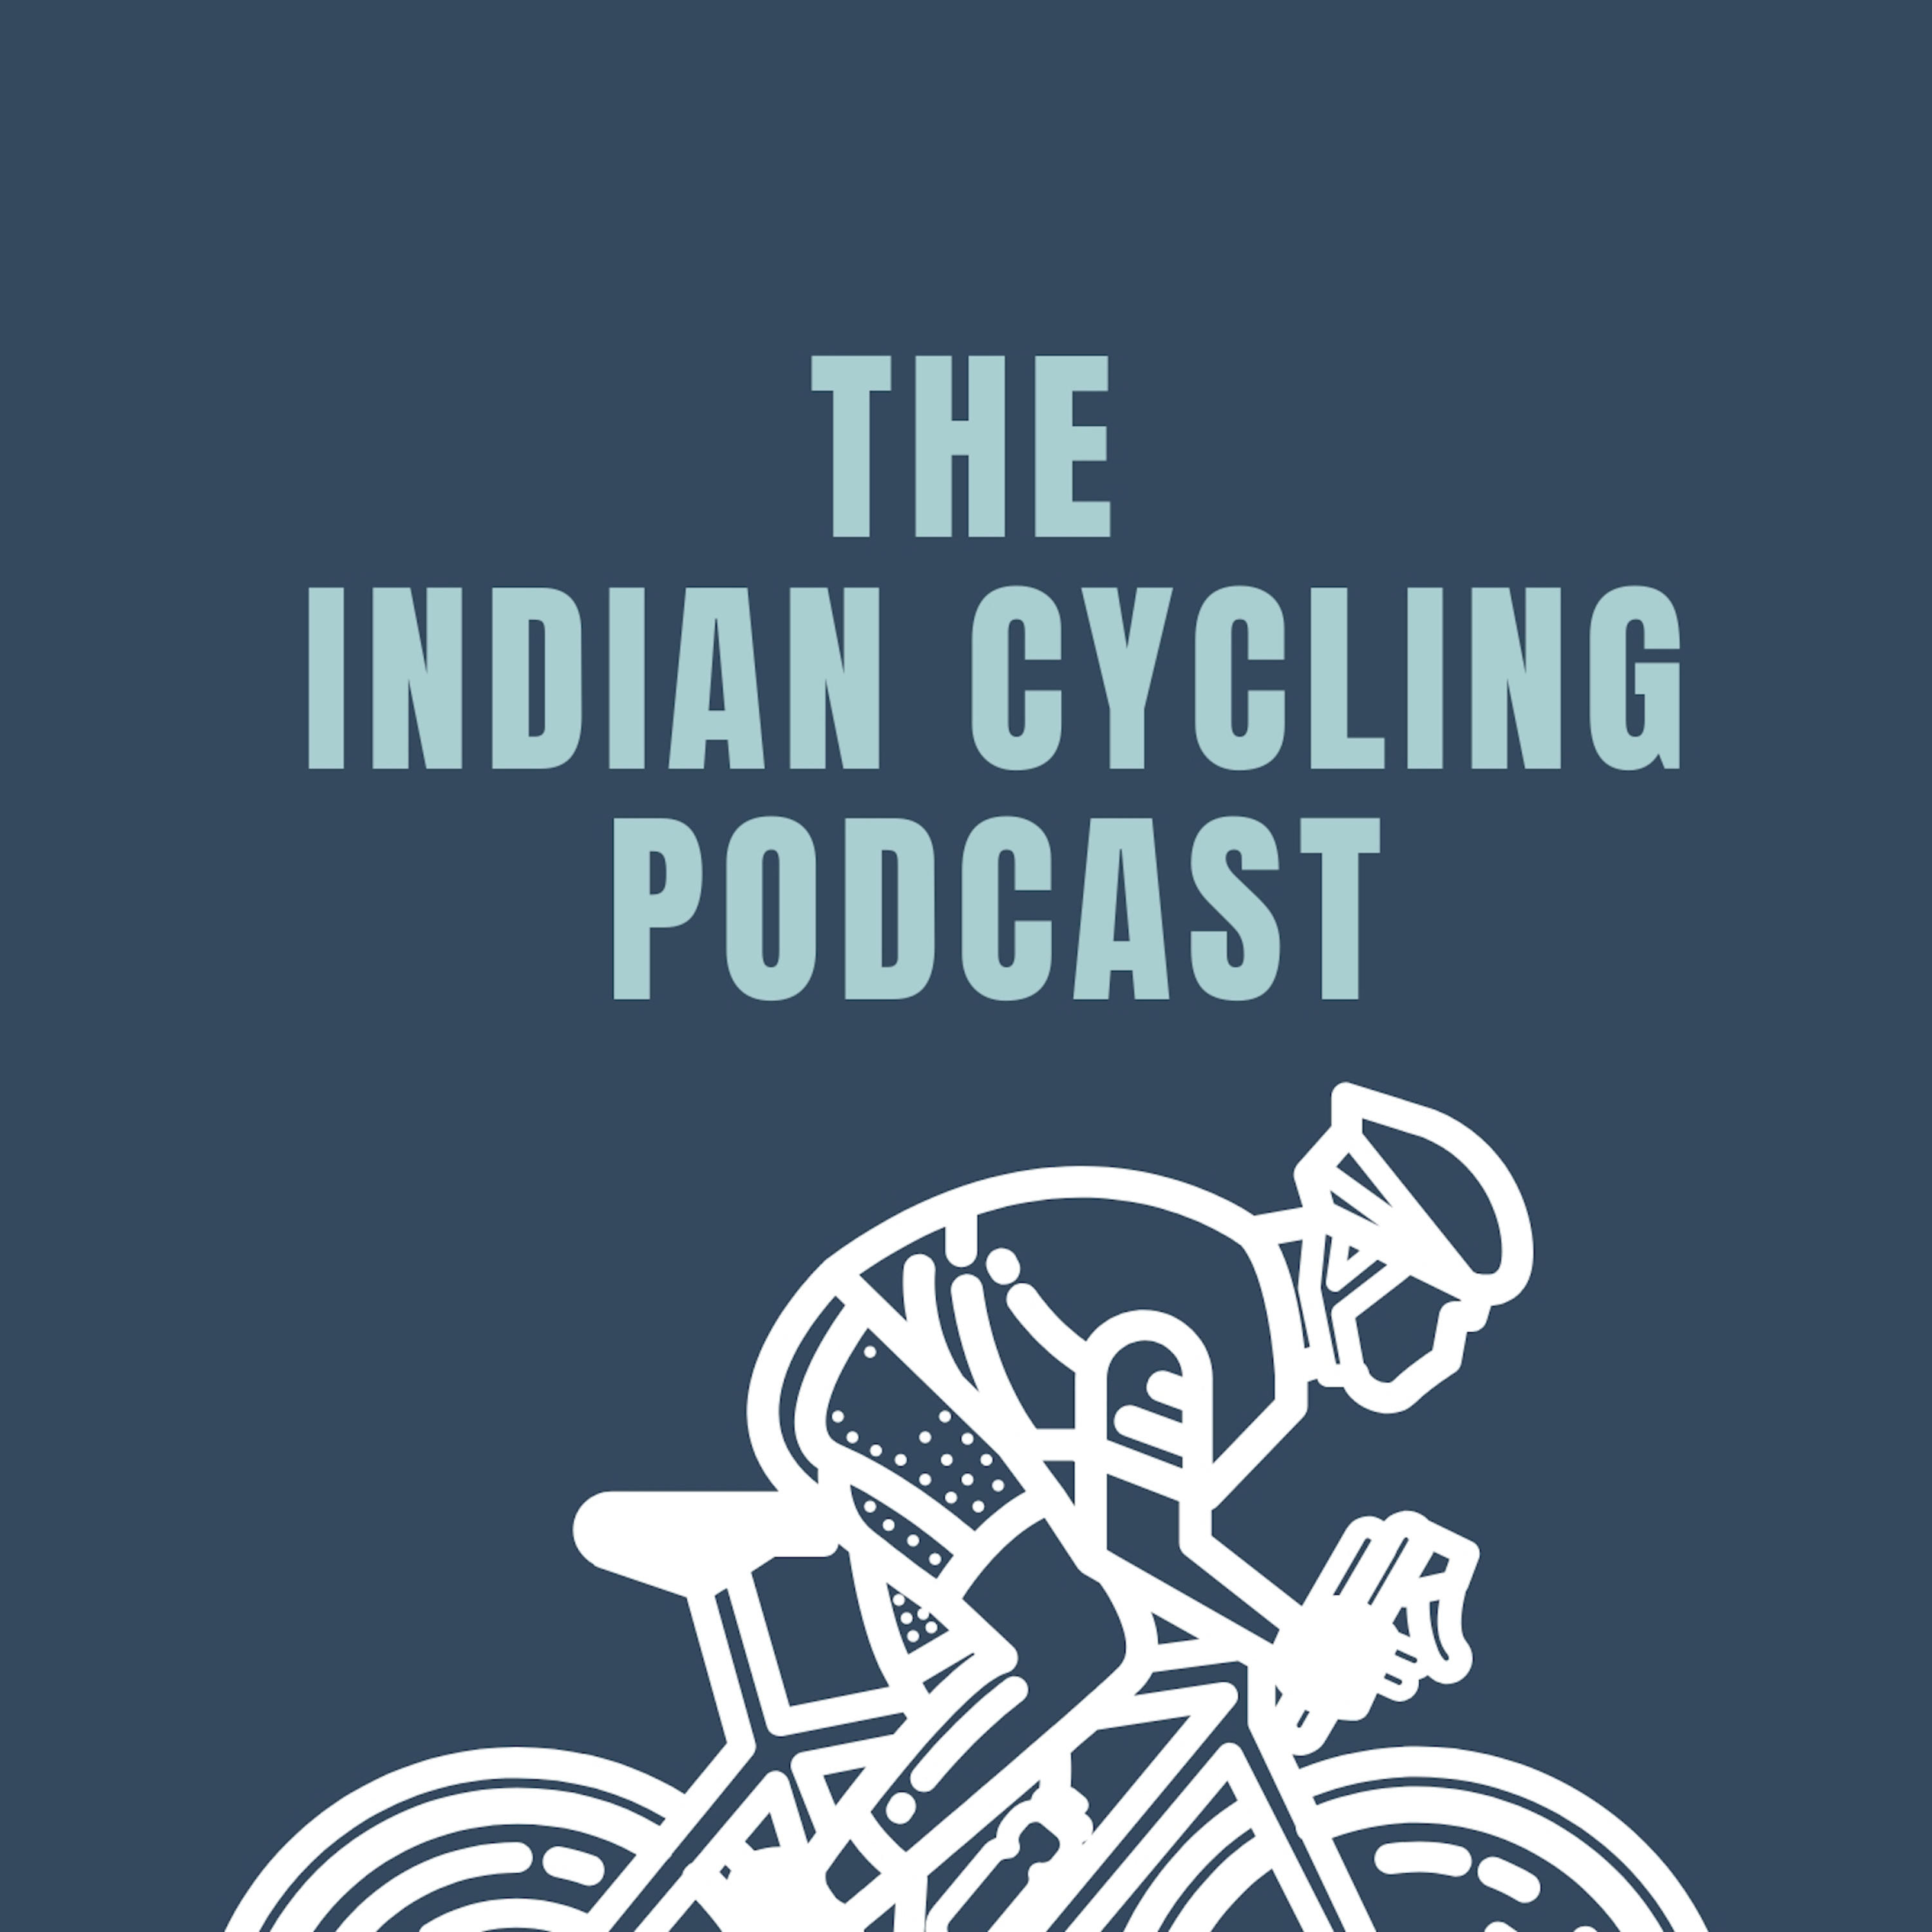 The Indian Cycling Podcast